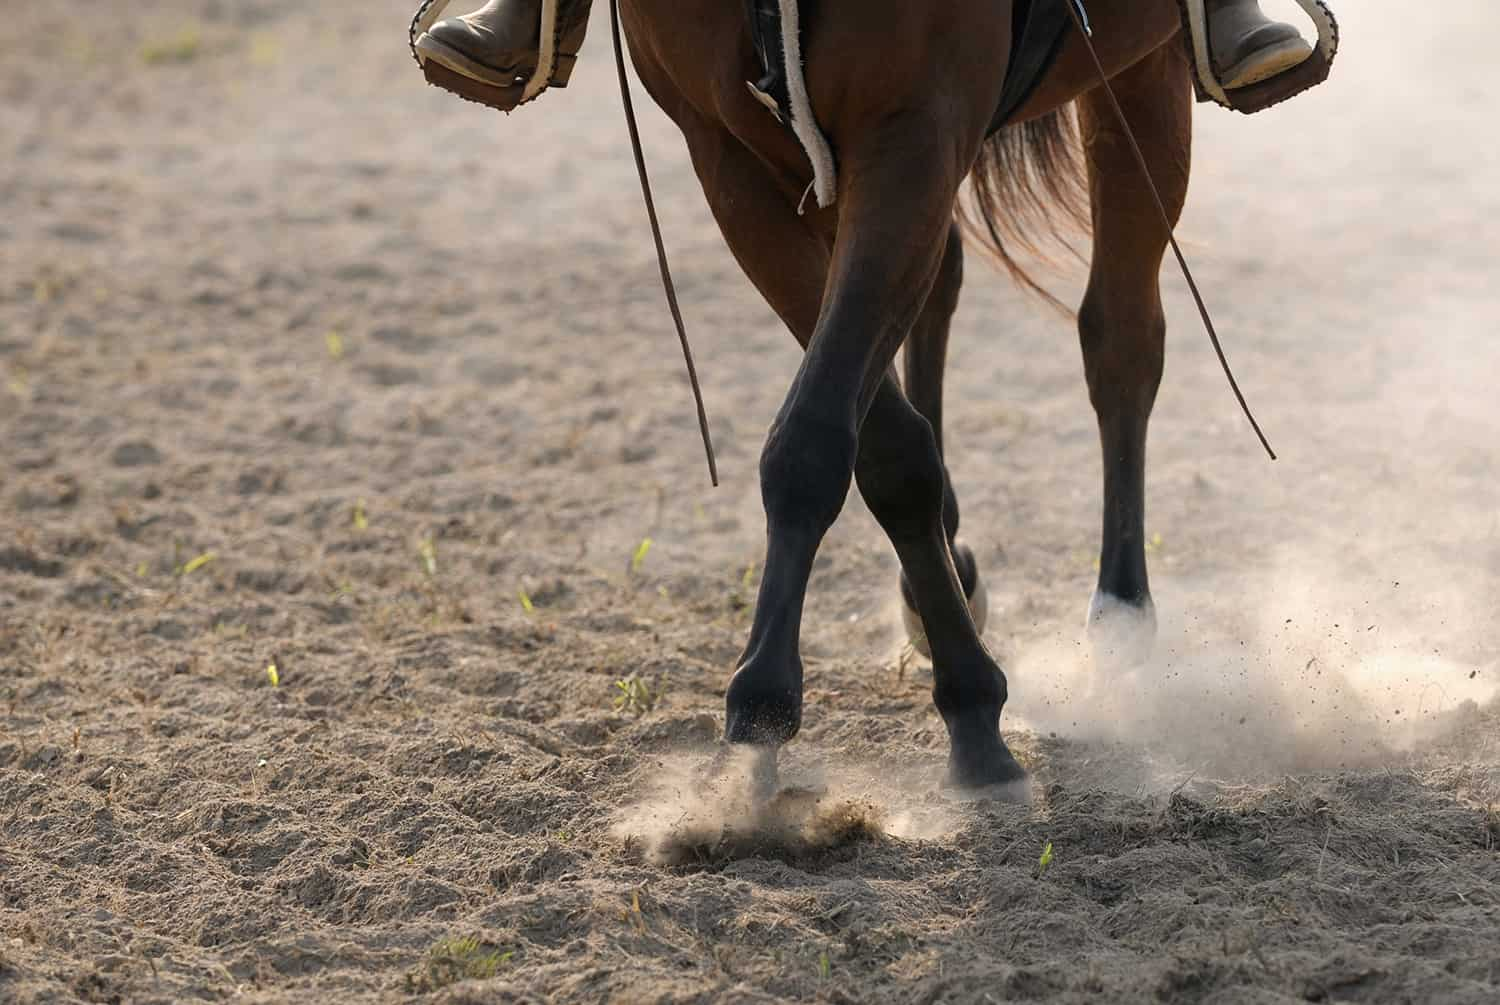 The best way to avoid dusty arena footing is to begin with the right footing--the least dusty option.